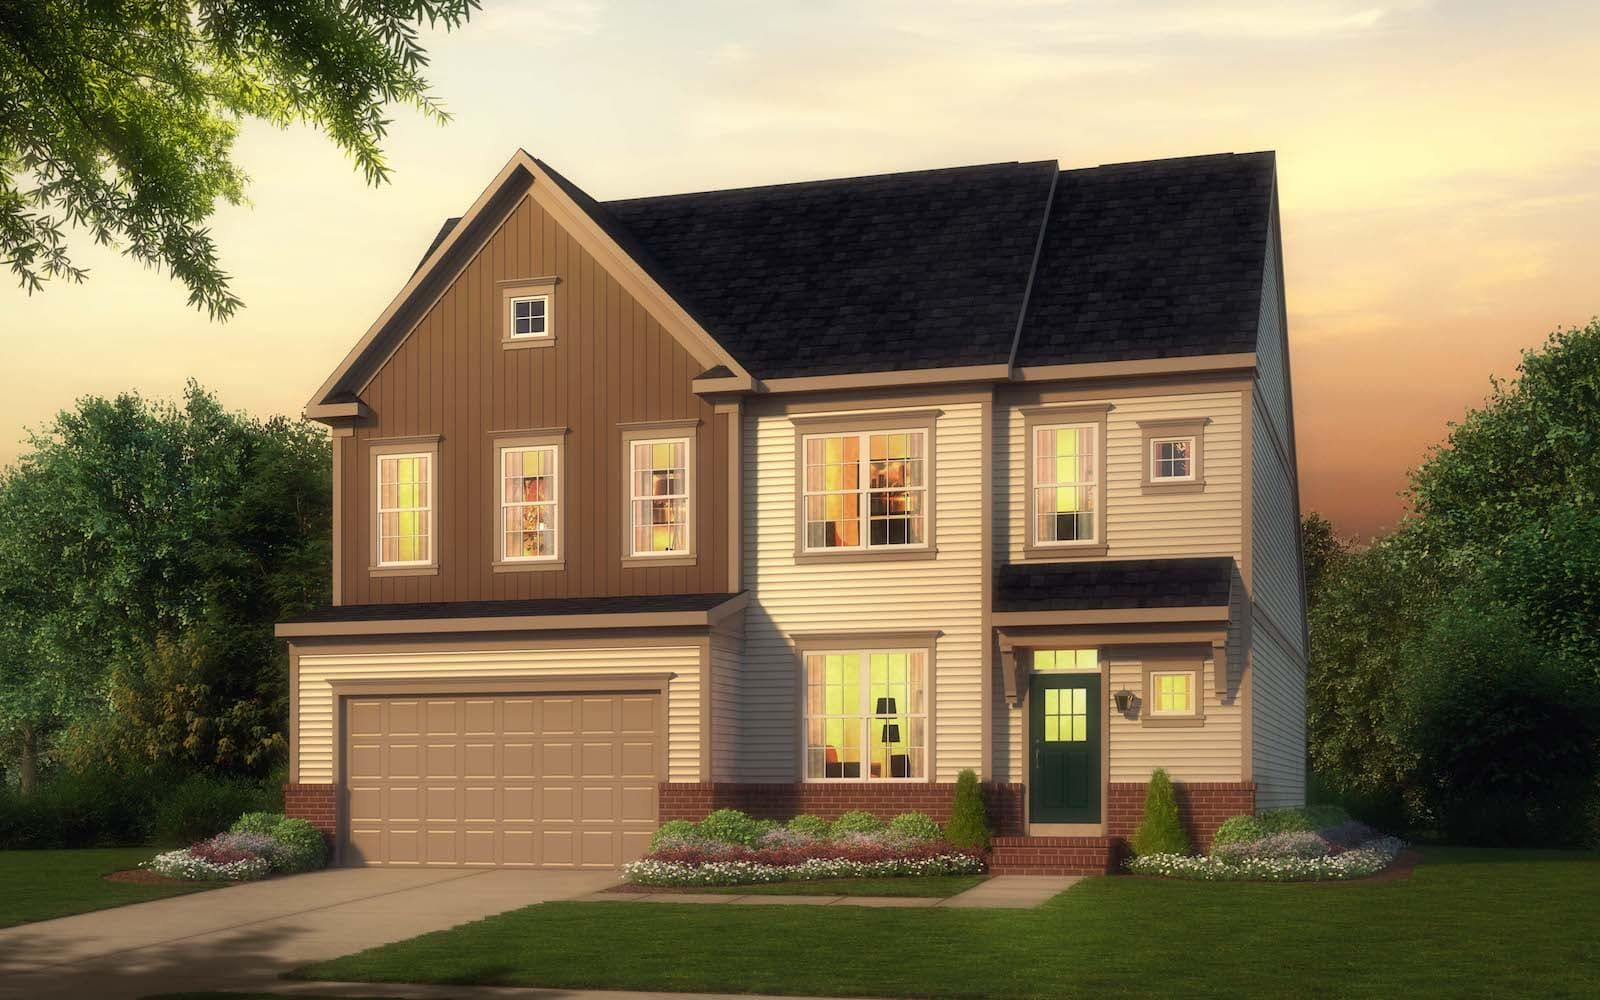 Exterior:Elevation 1 of the Cresswell a home design by Brookfield Residential at The Bluffs at Sleeter Lake